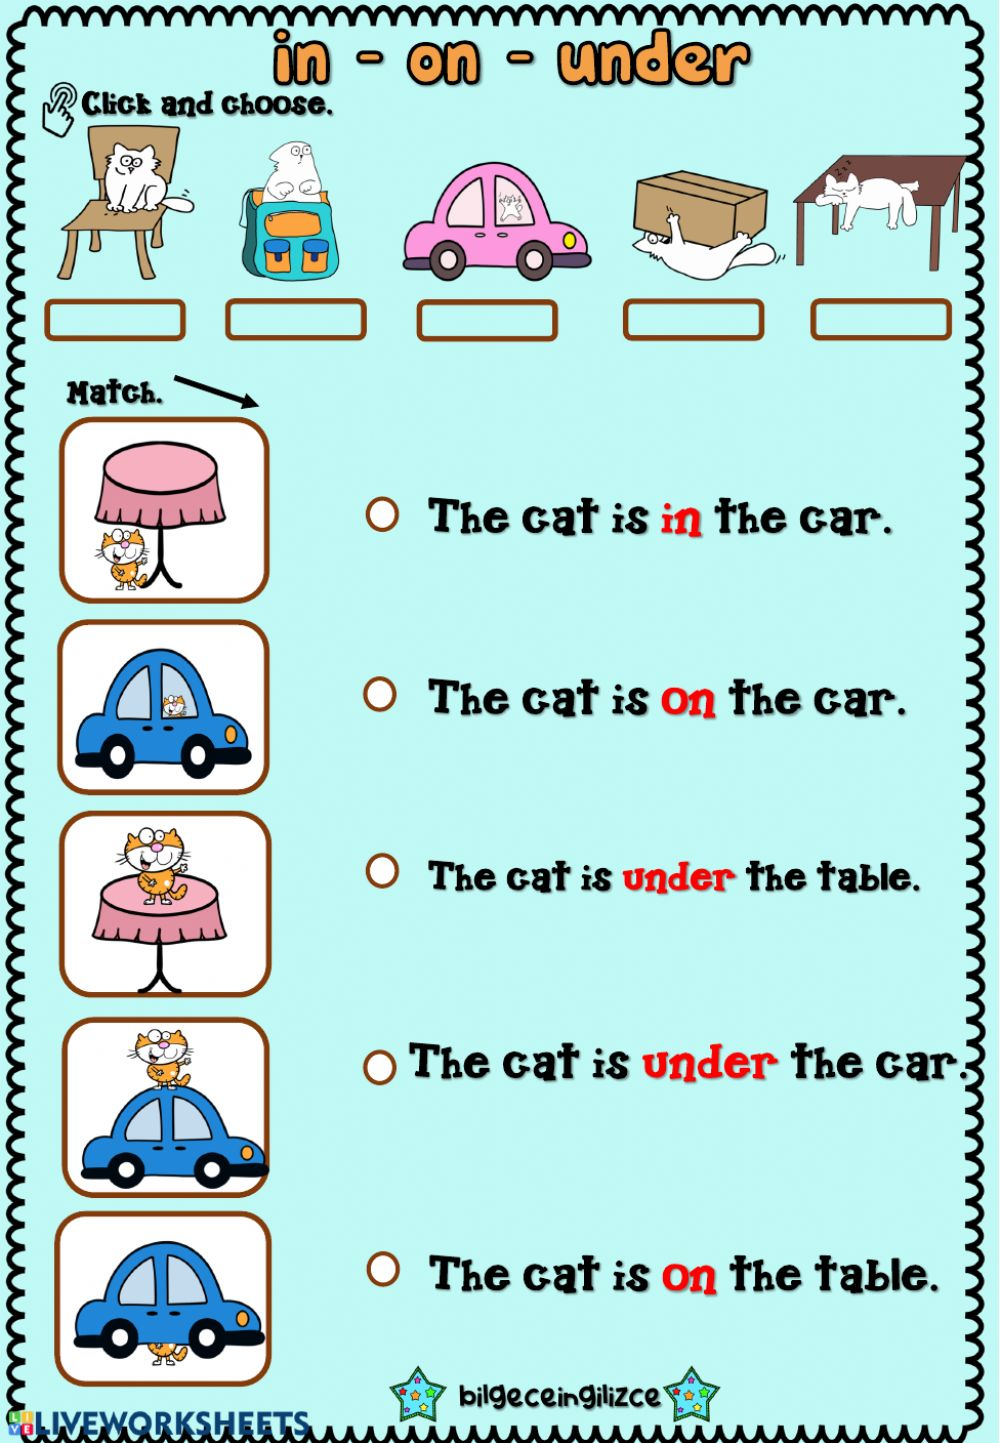 Prepositions Of Place Interactive And Downloadable Worksheet You Can Do The Exercises Preposition Worksheets Kindergarten Preposition Worksheets Prepositions [ 1443 x 1000 Pixel ]